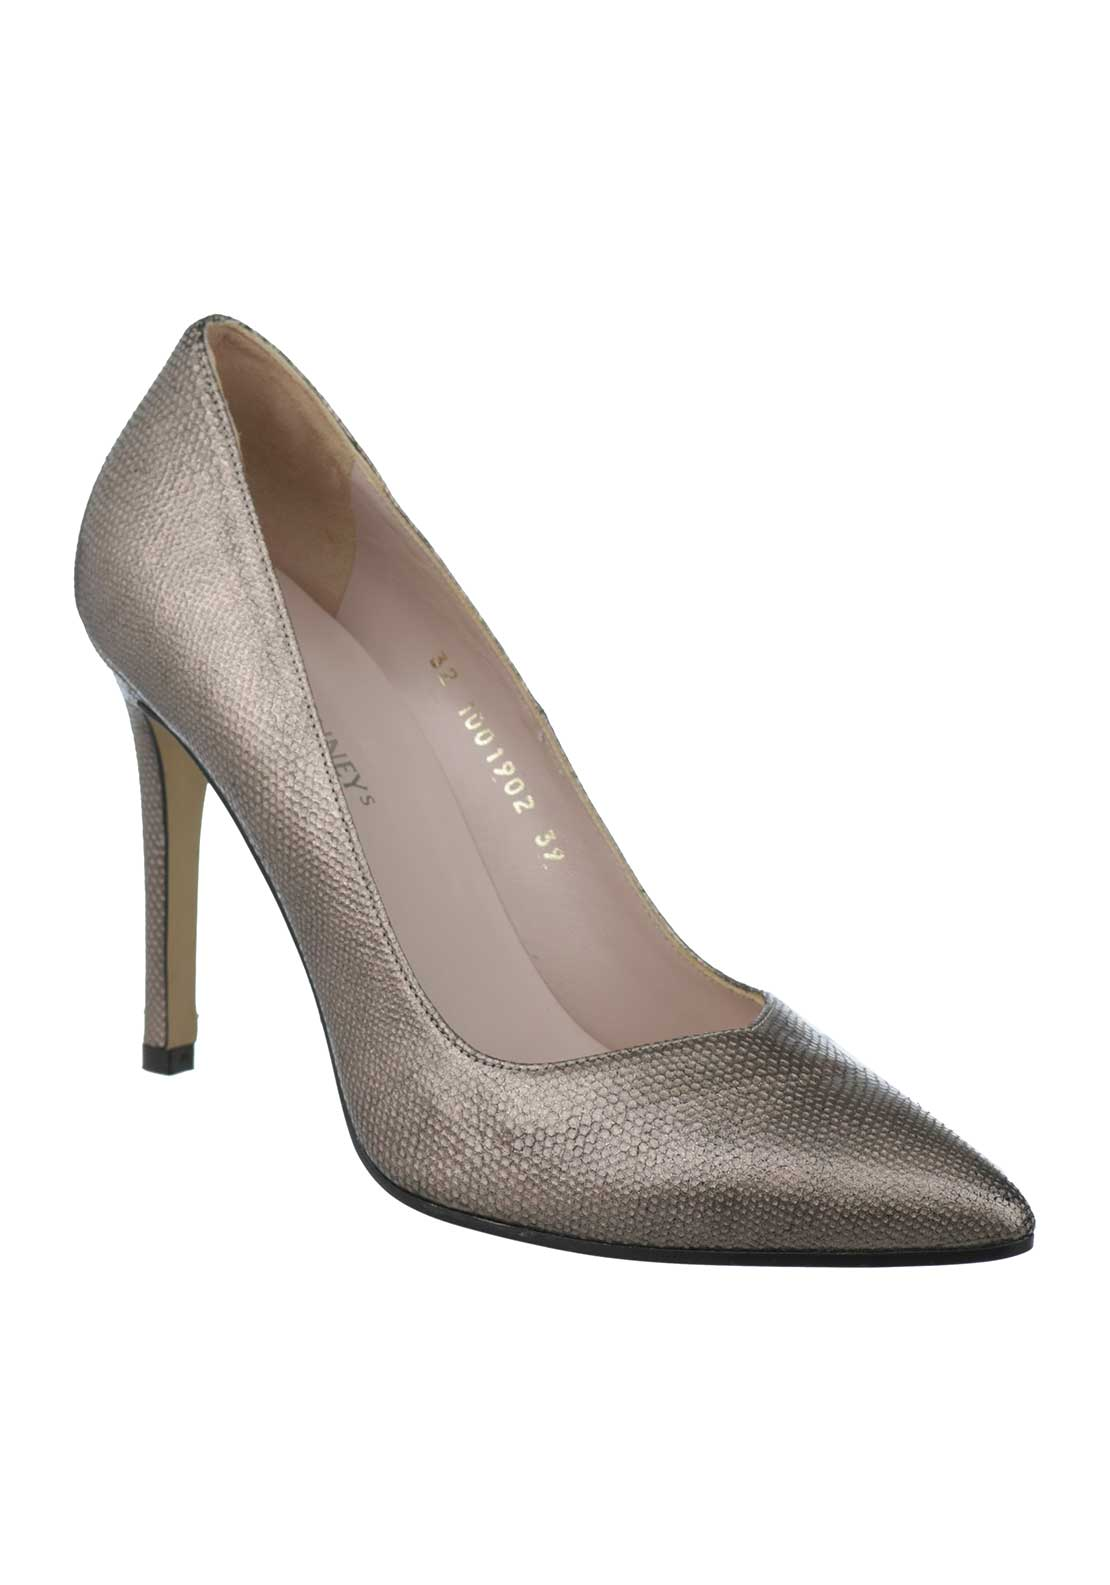 McElhinneys by Lodi Vela Leather Reptile Heeled Court Shoes, Taupe